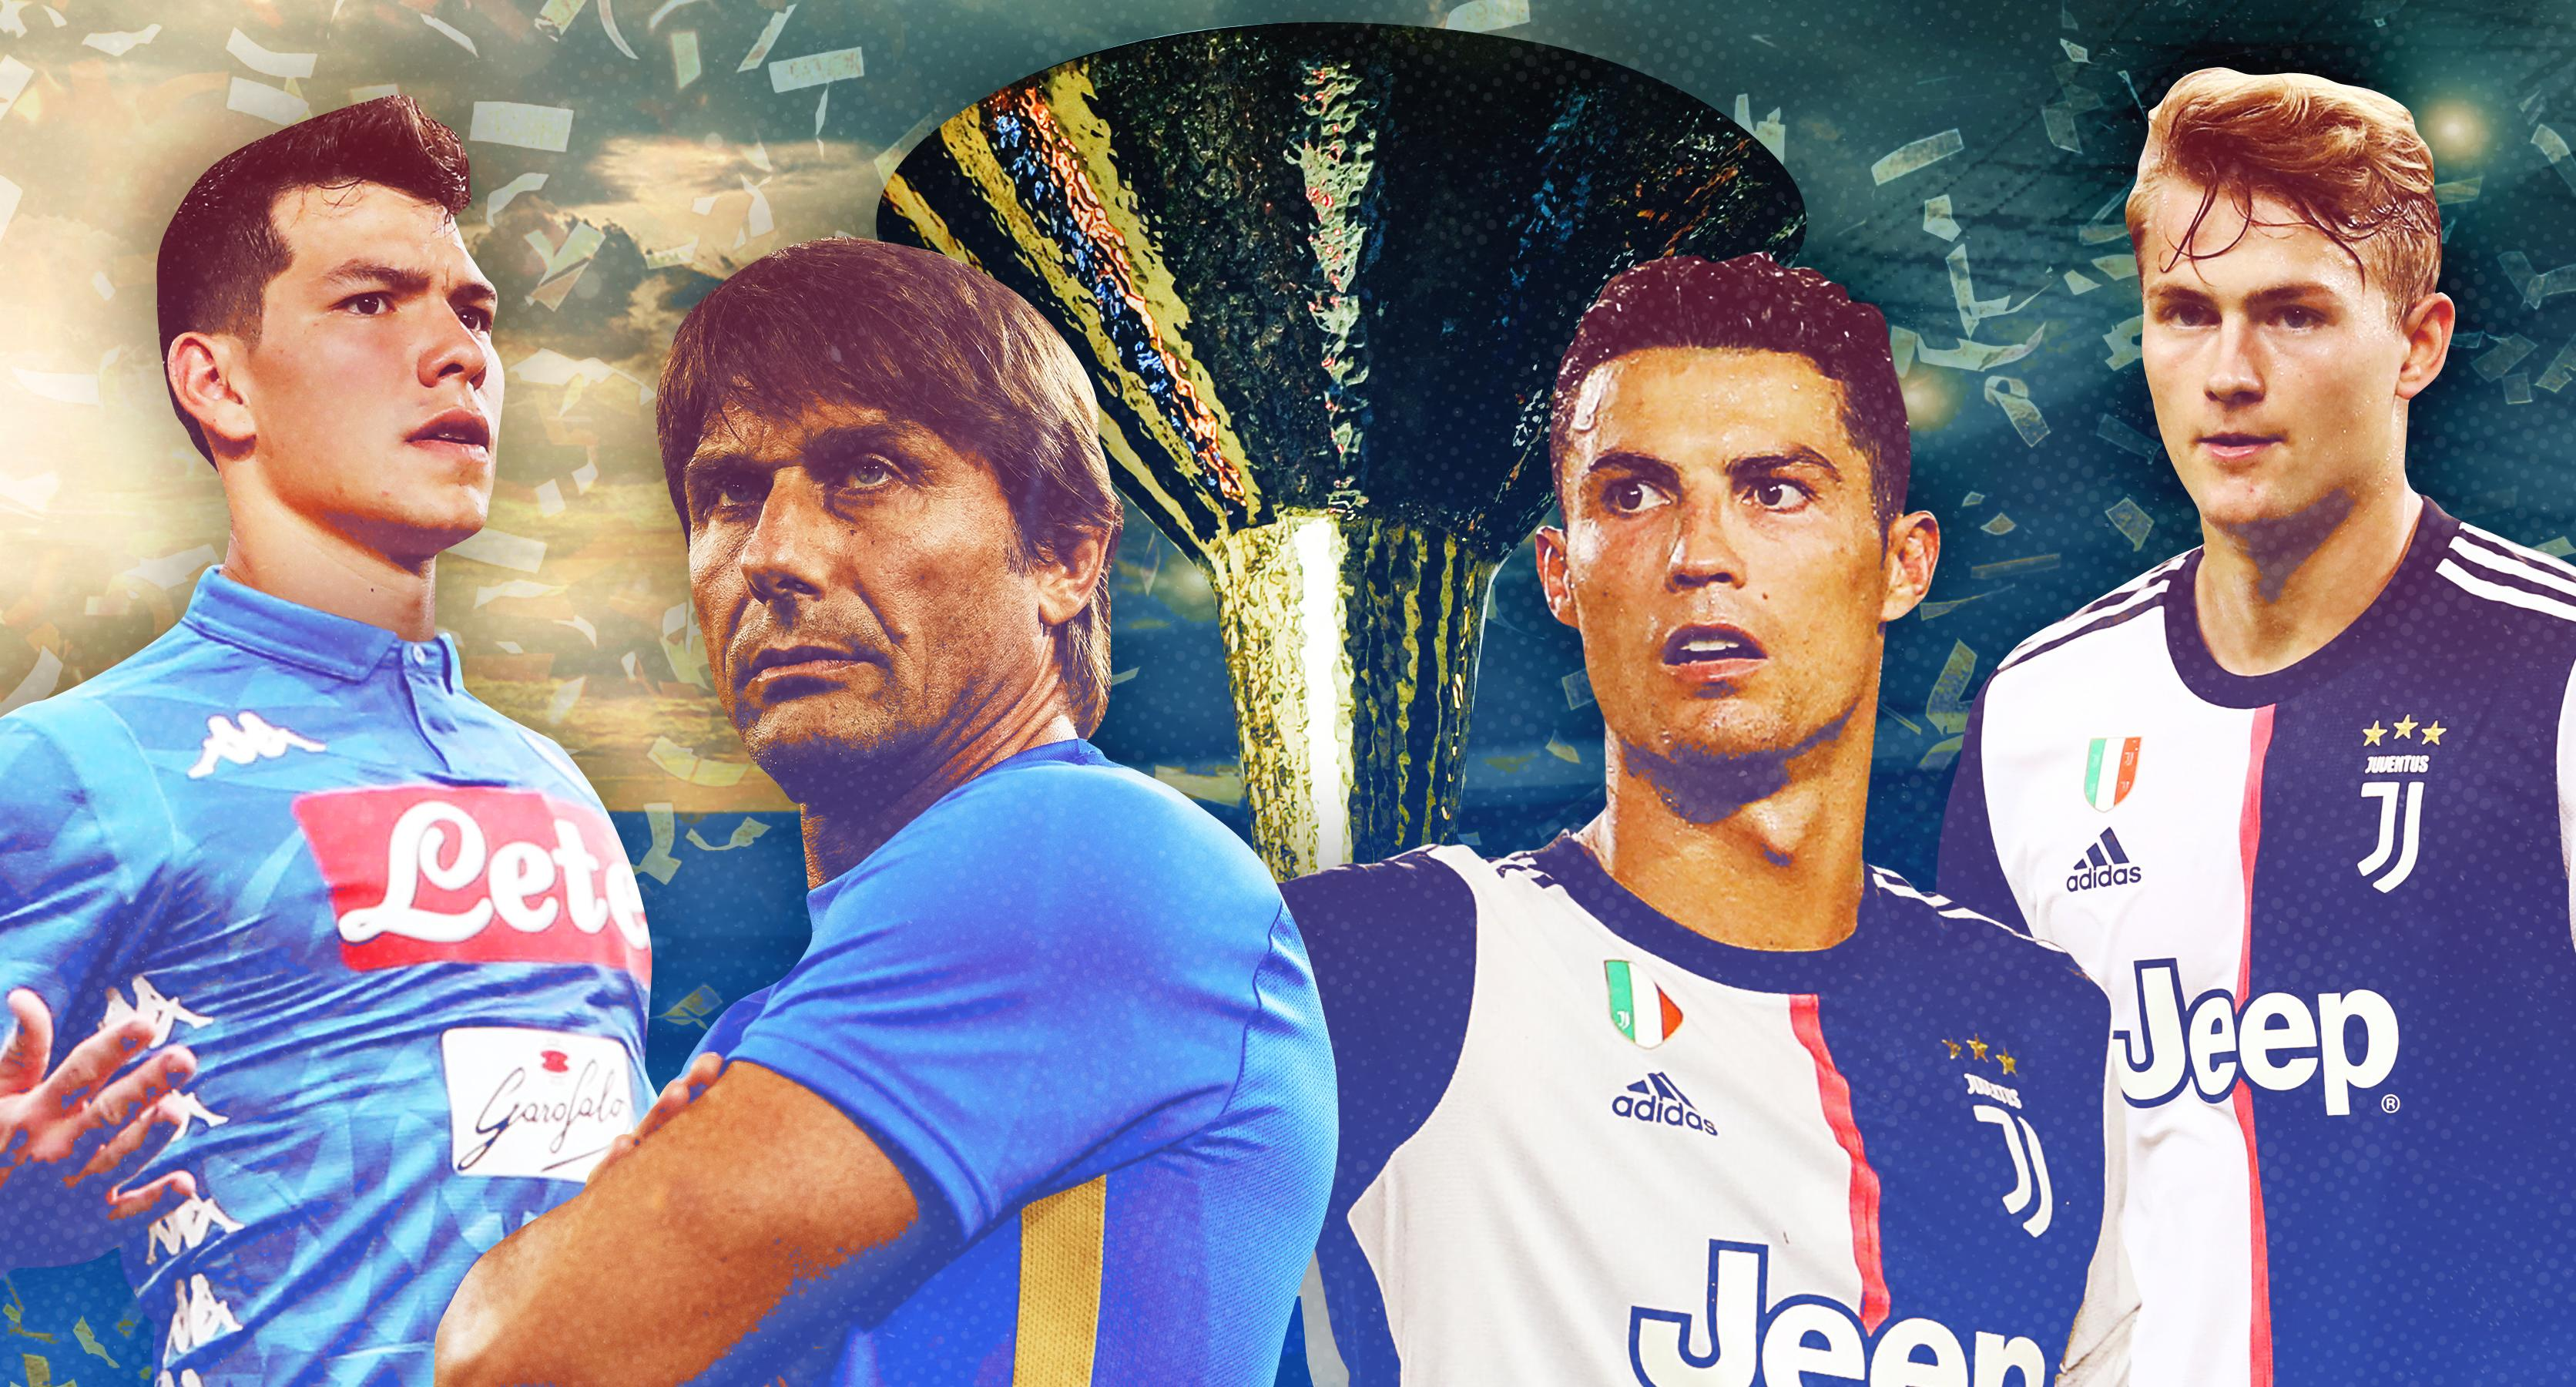 Serie A Preview Ronaldo Juventus Strong But So Are Others